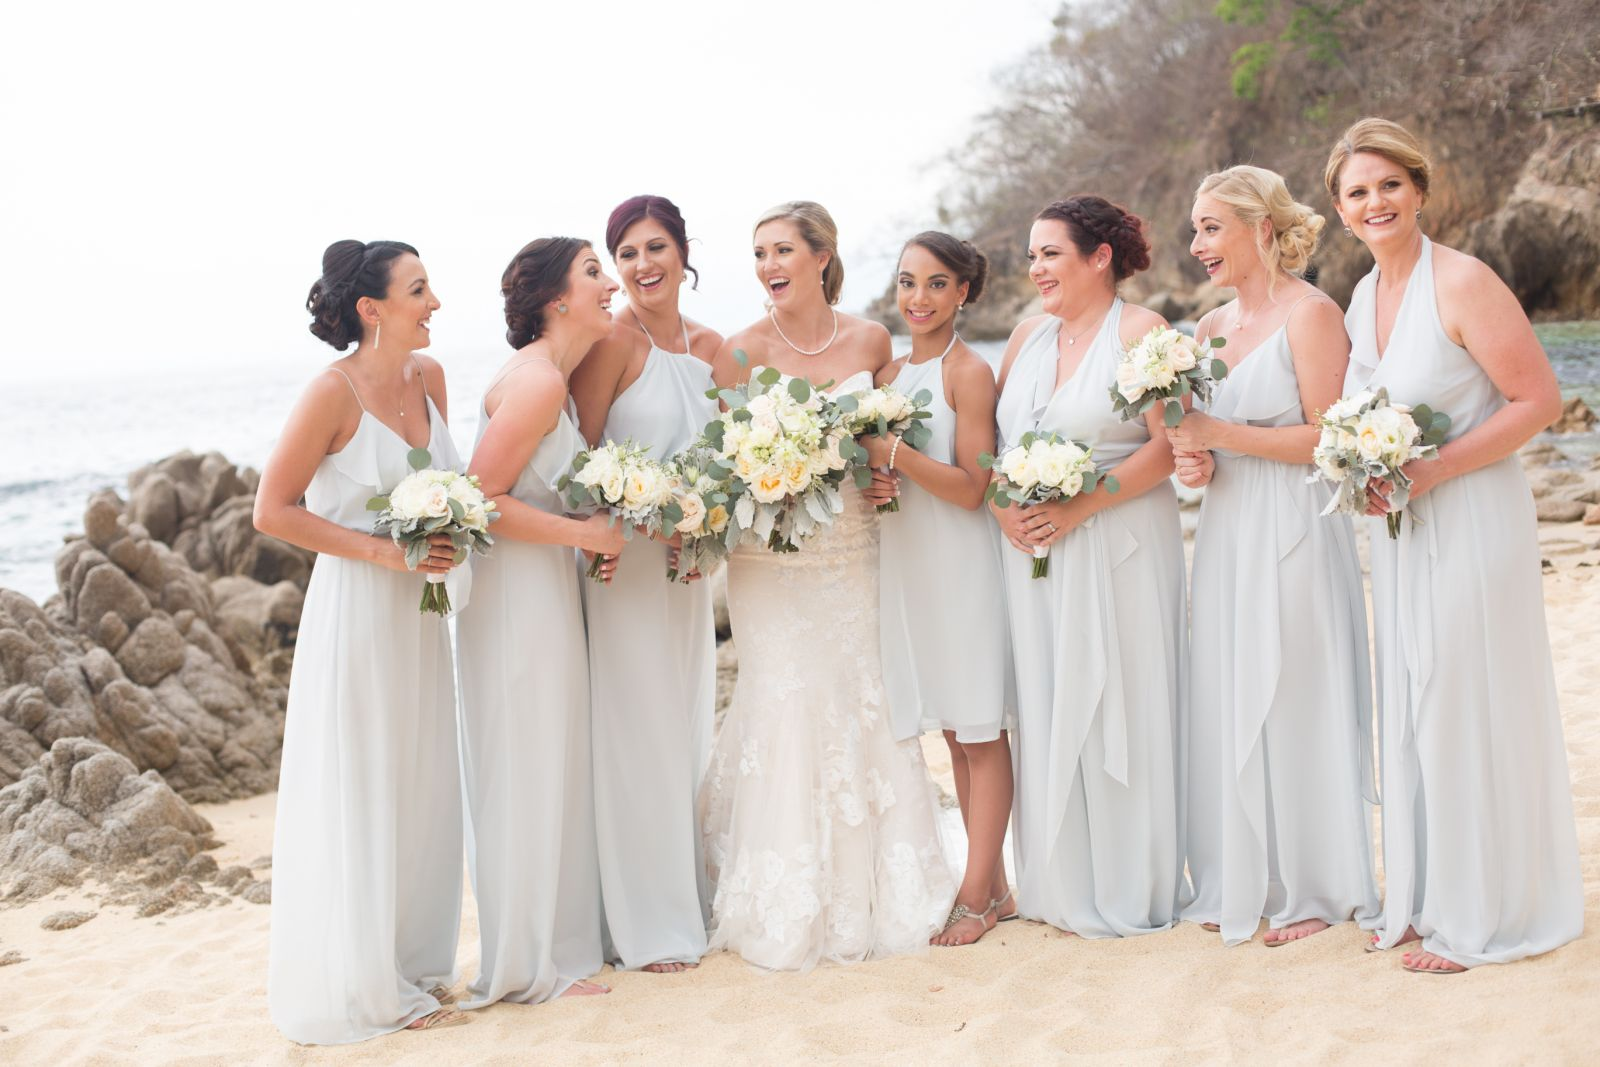 J&R Bridesmaids in light blue, a beautiful trendy style.